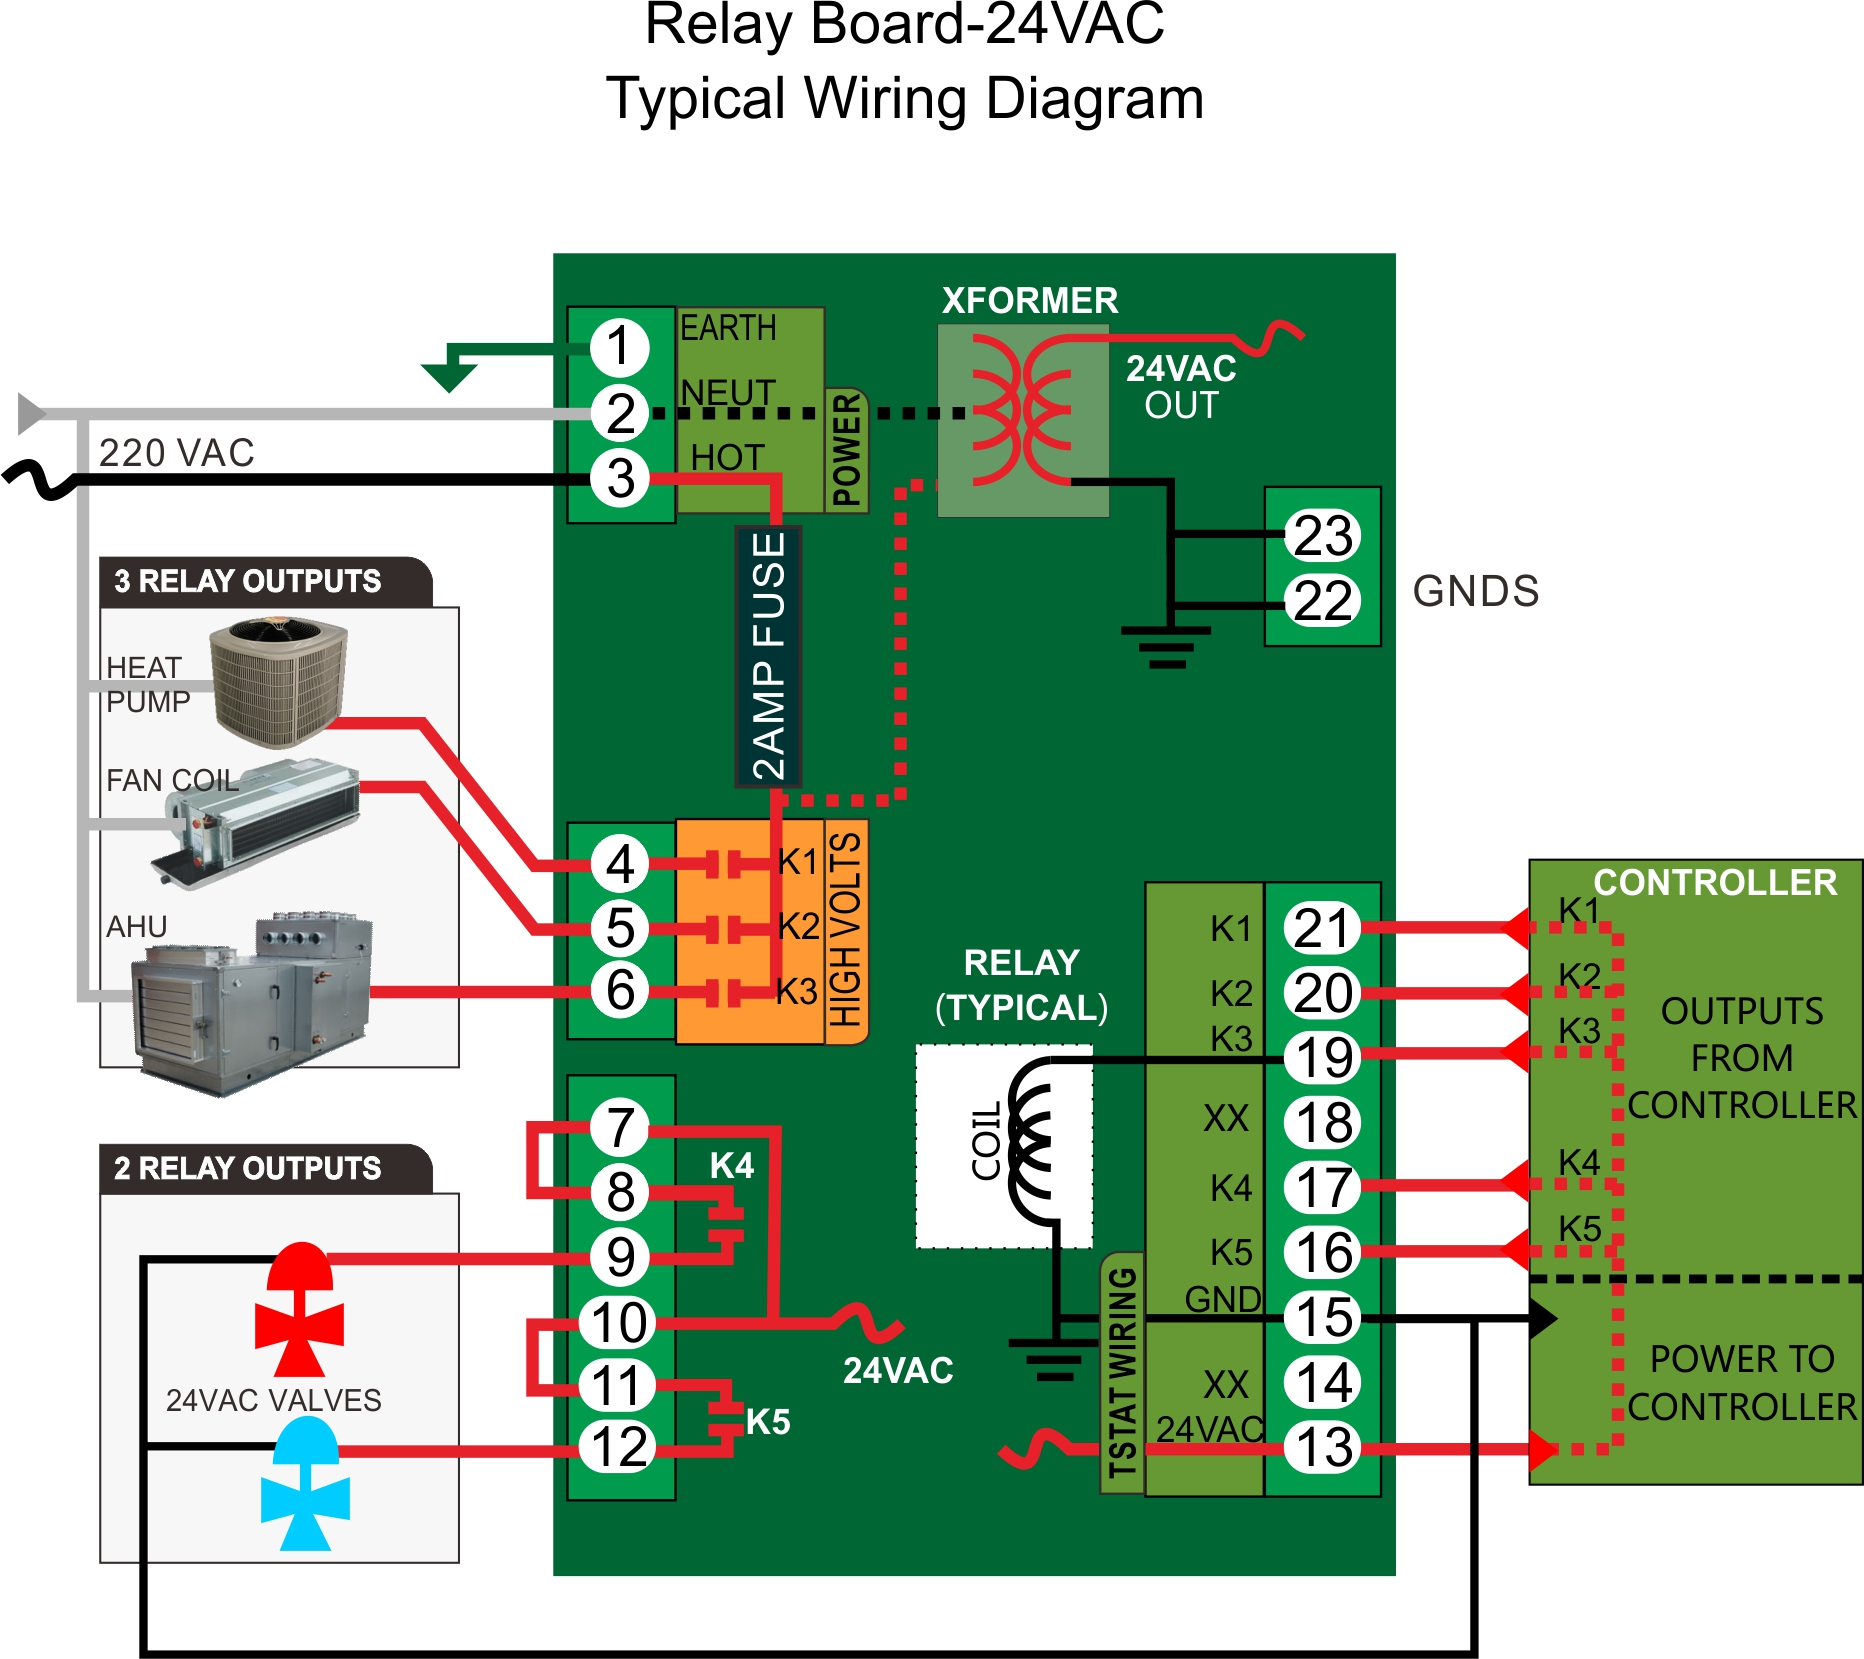 Control And Relay Panel Wiring Diagram : Latching relay wiring diagram symbols sump pump control